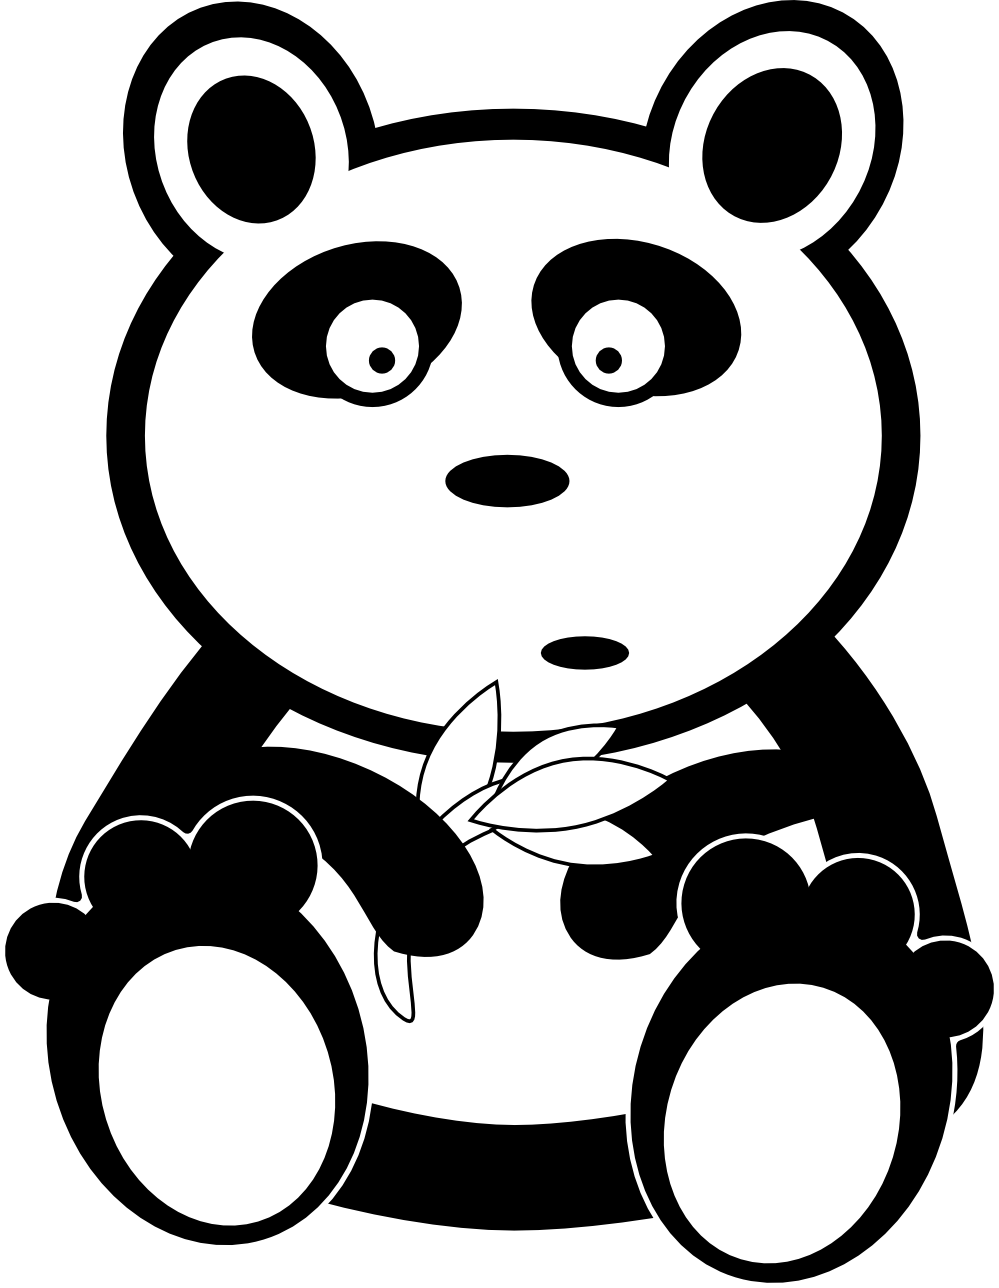 Animal book clipart png black and white clipartist.net » Clip Art » adam lowe panda black white line art ... png black and white